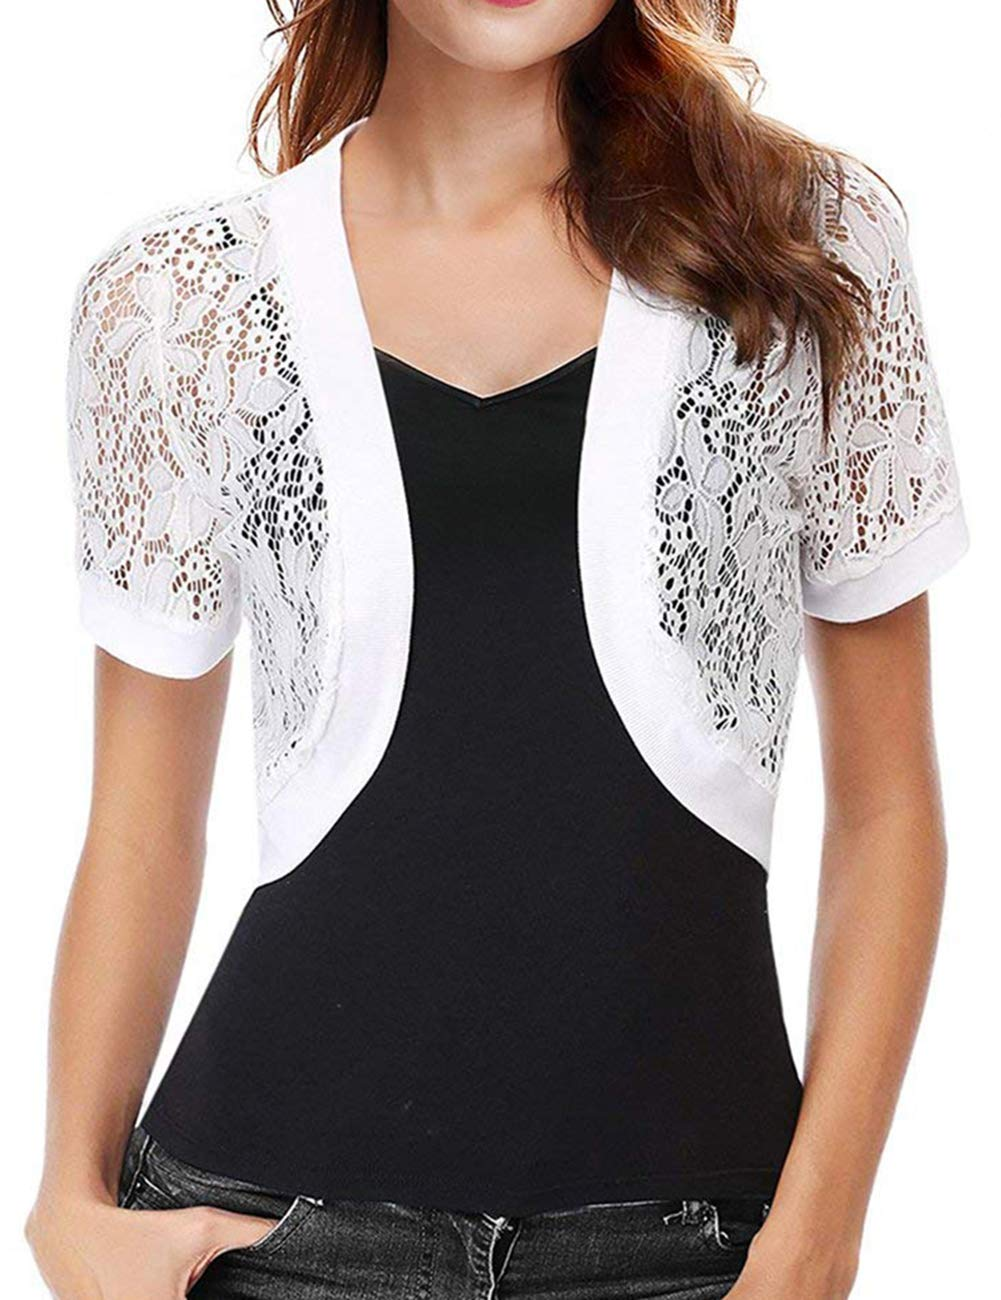 Wedding Lace Cardigan for Summer Dress Duster Jacket for Women Lace (White,M)